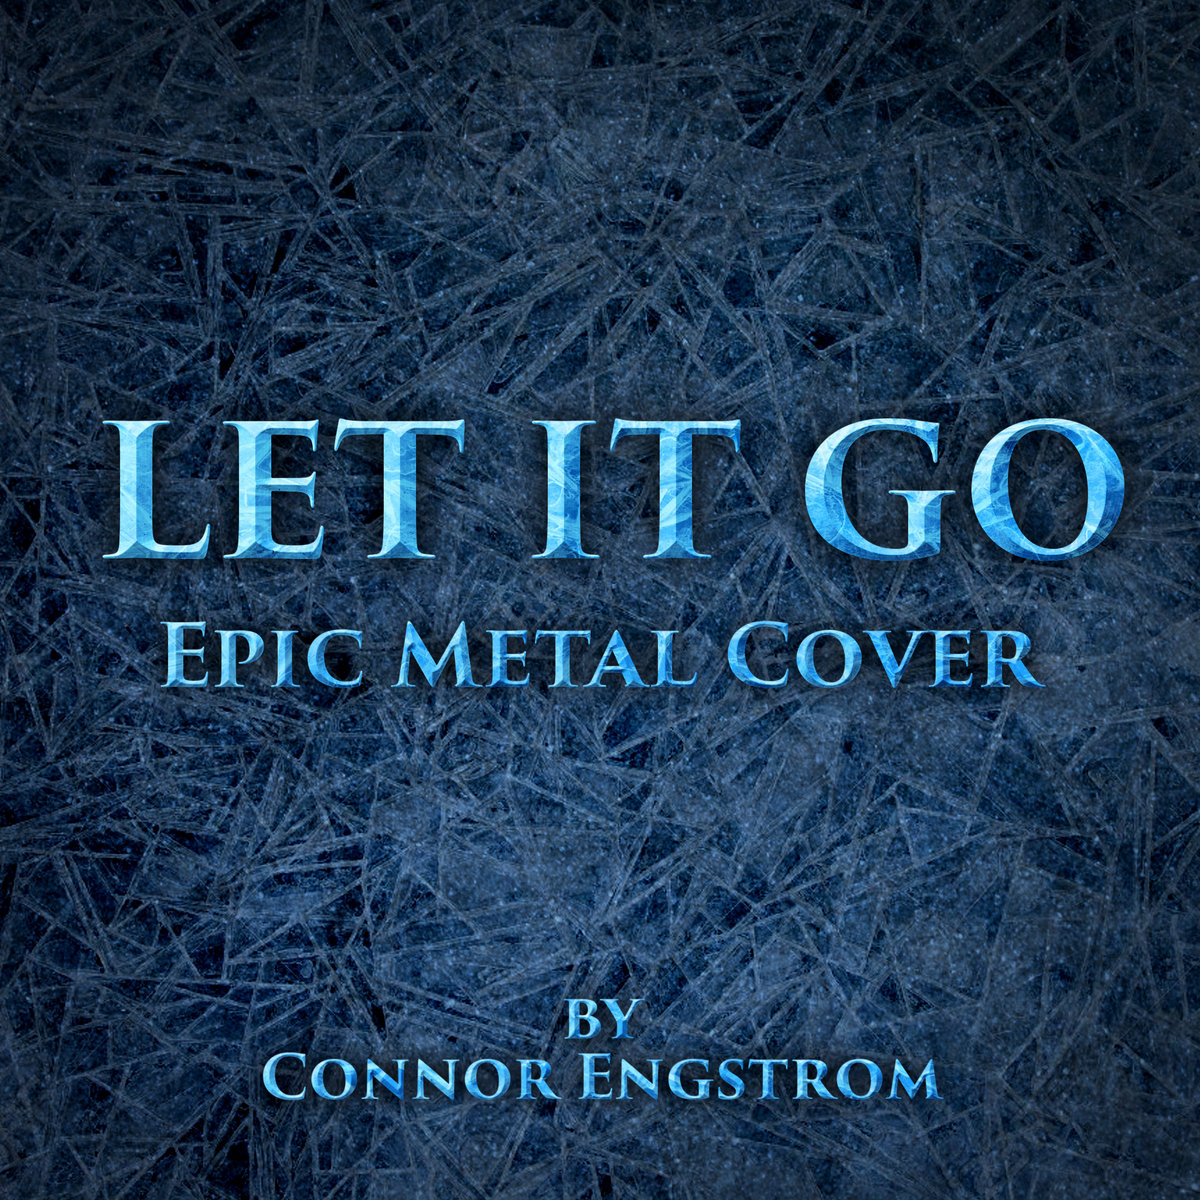 Let It Go (Epic Metal Cover) | Connor Engstrom